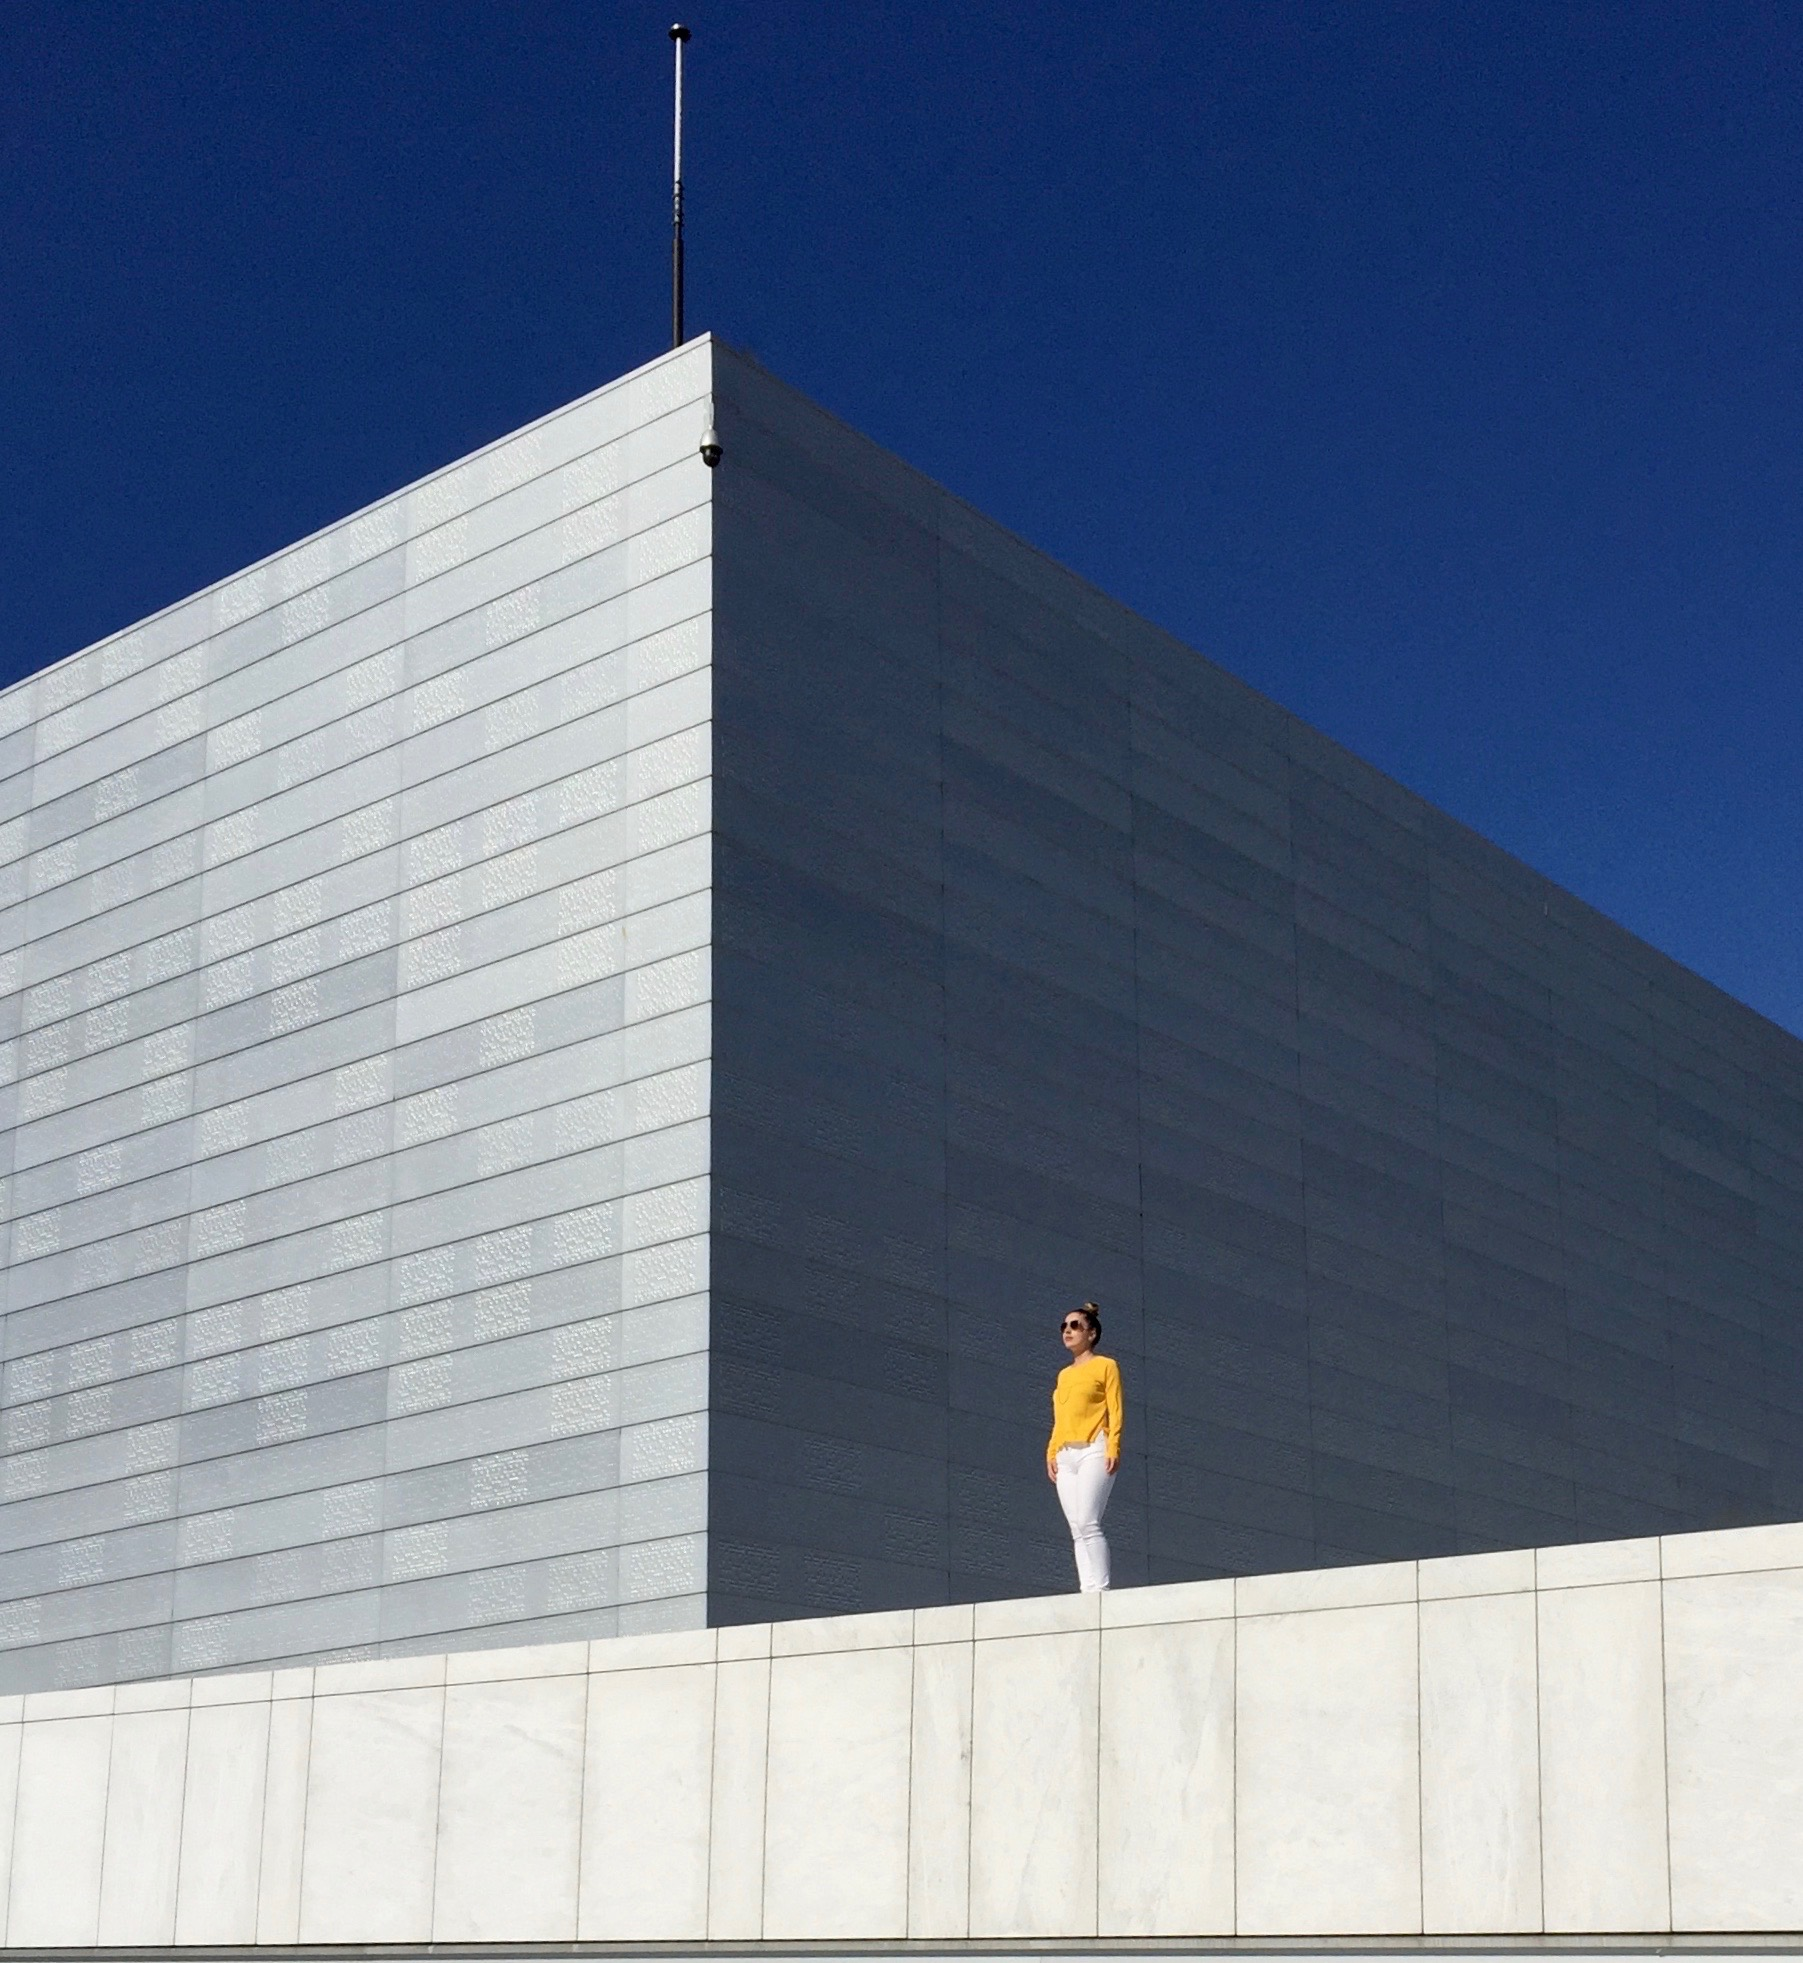 THE NORWEGIAN NATIONAL OPERA & BALLET HOUSE • OSLO, NORWAY PHOTOGRAPHER: OLIVER